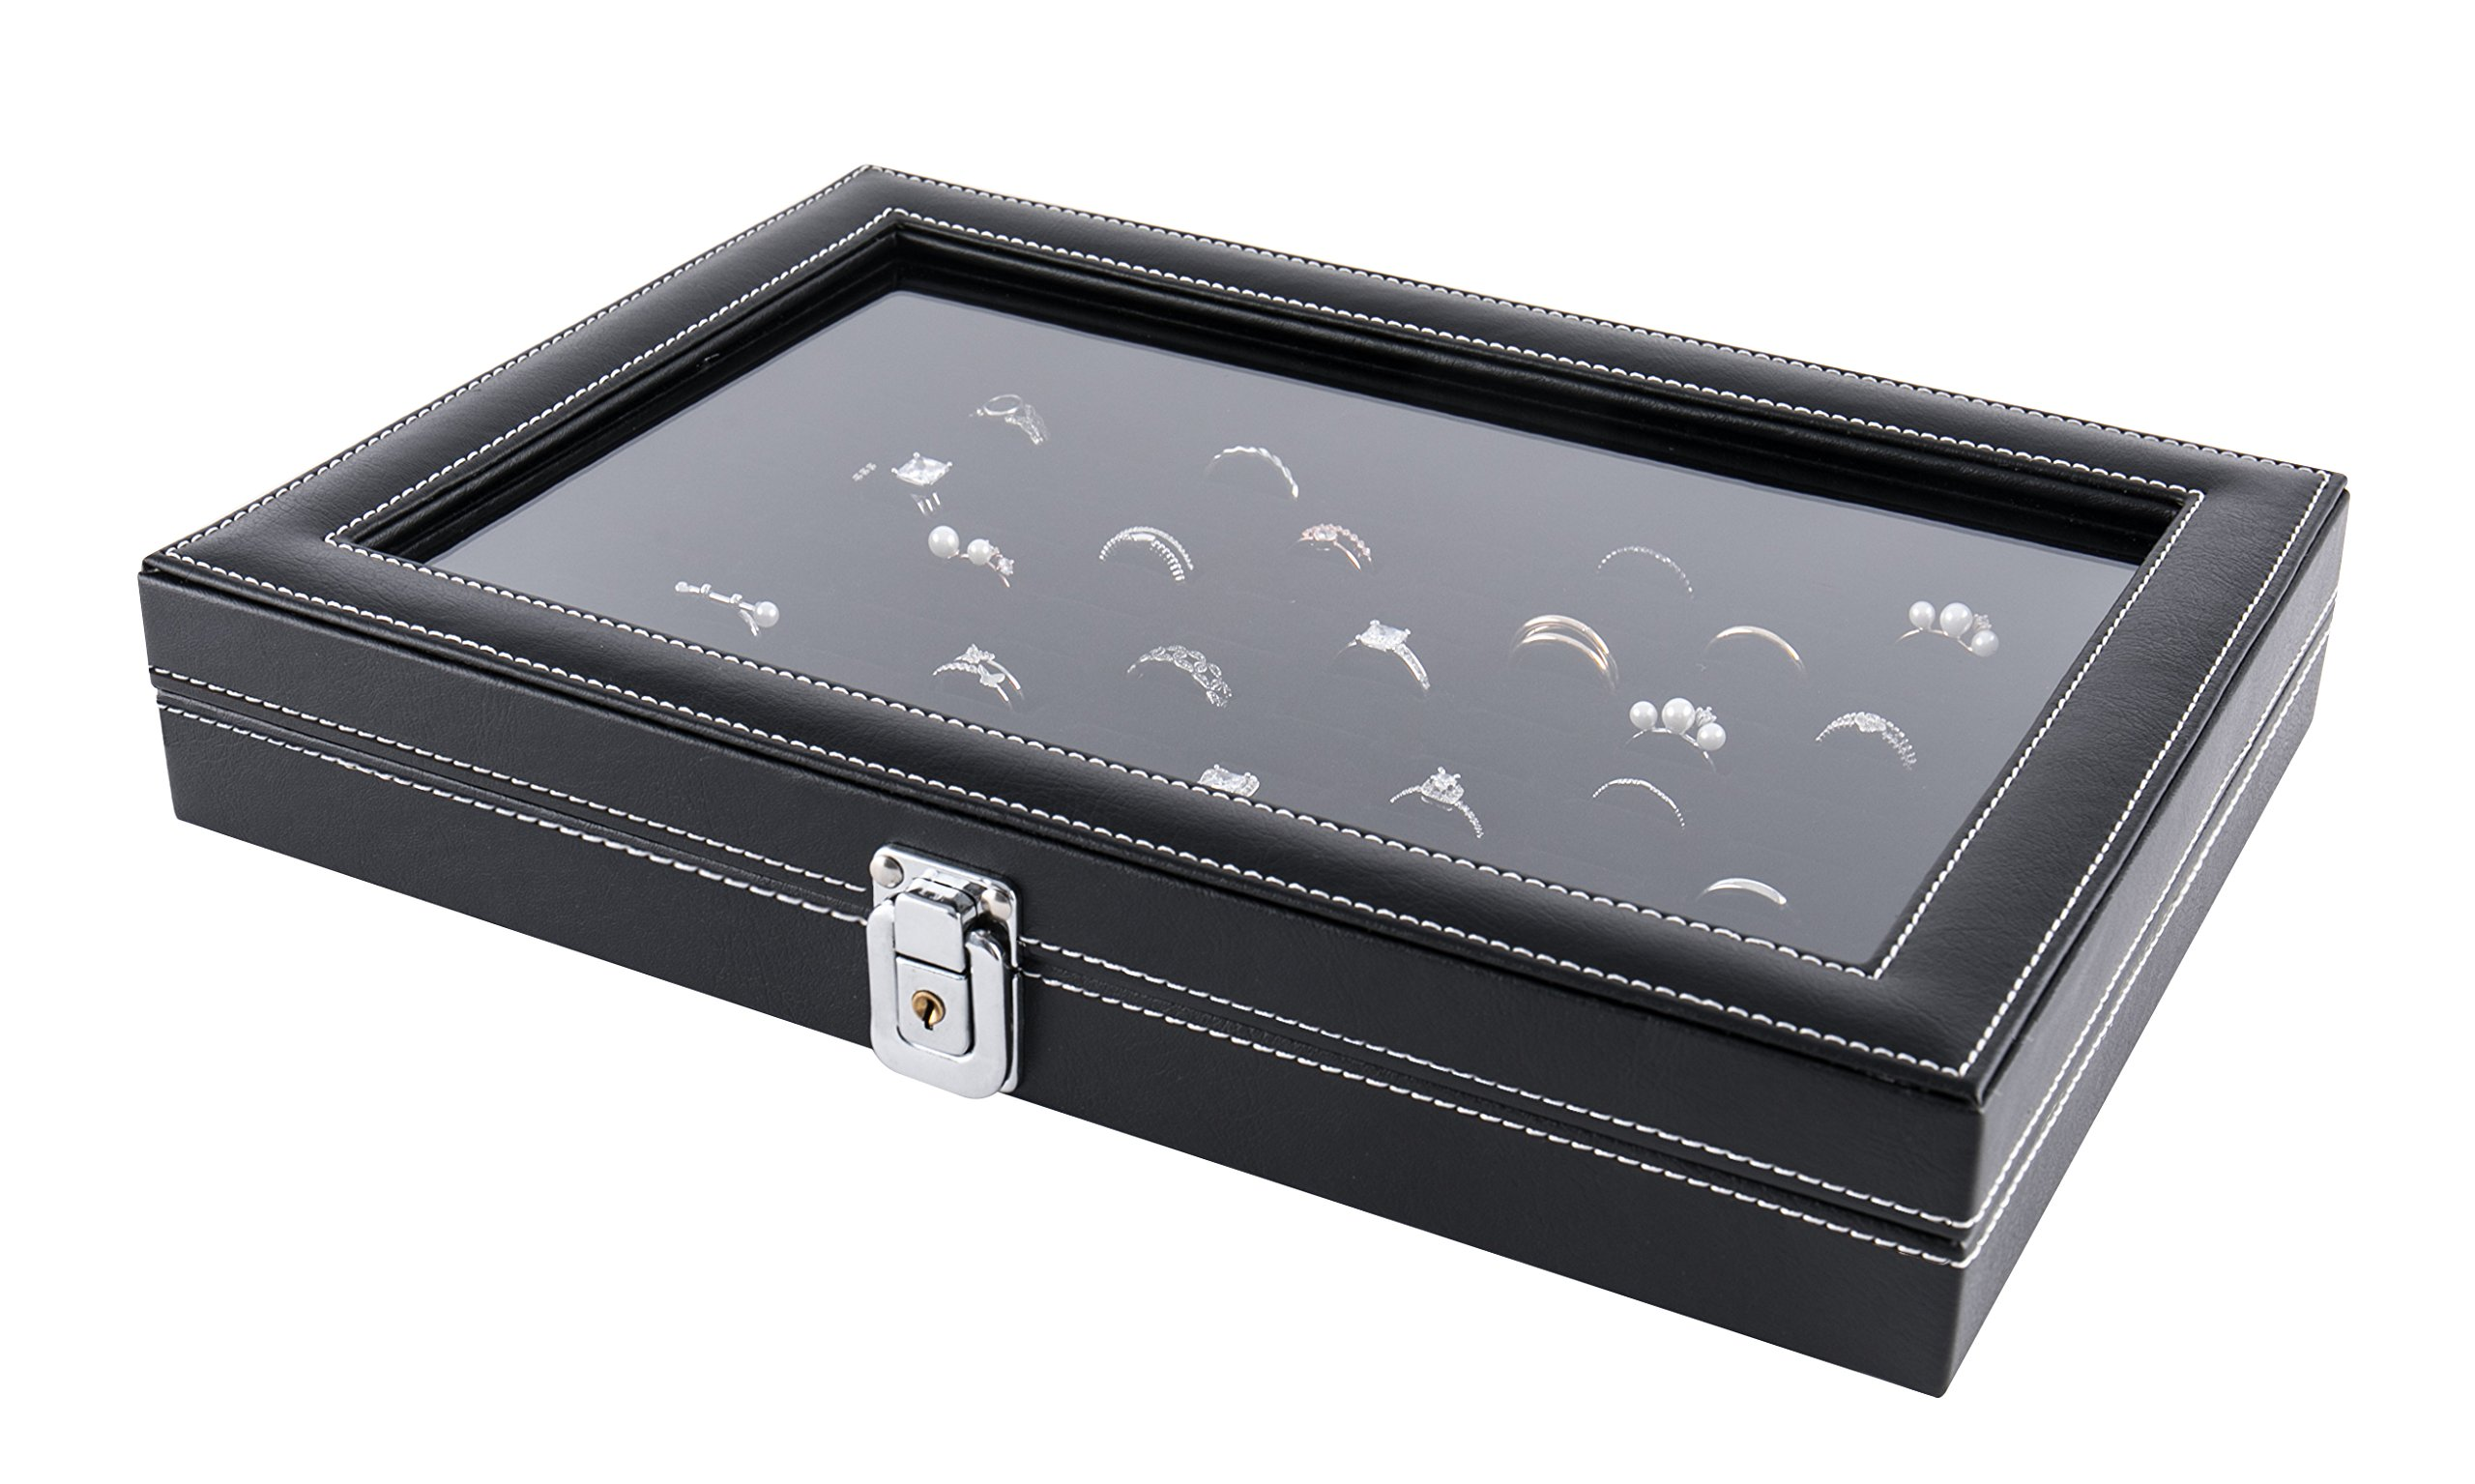 JackCubeDesign Jewelry Ring Display Organizer Storage Box Case Tray Holder with 100 Slot Ring Display and Glass Cover(Black, Inside Black Velvet, 13.3 x 9.3 x 2.1 inches)- :MK376A